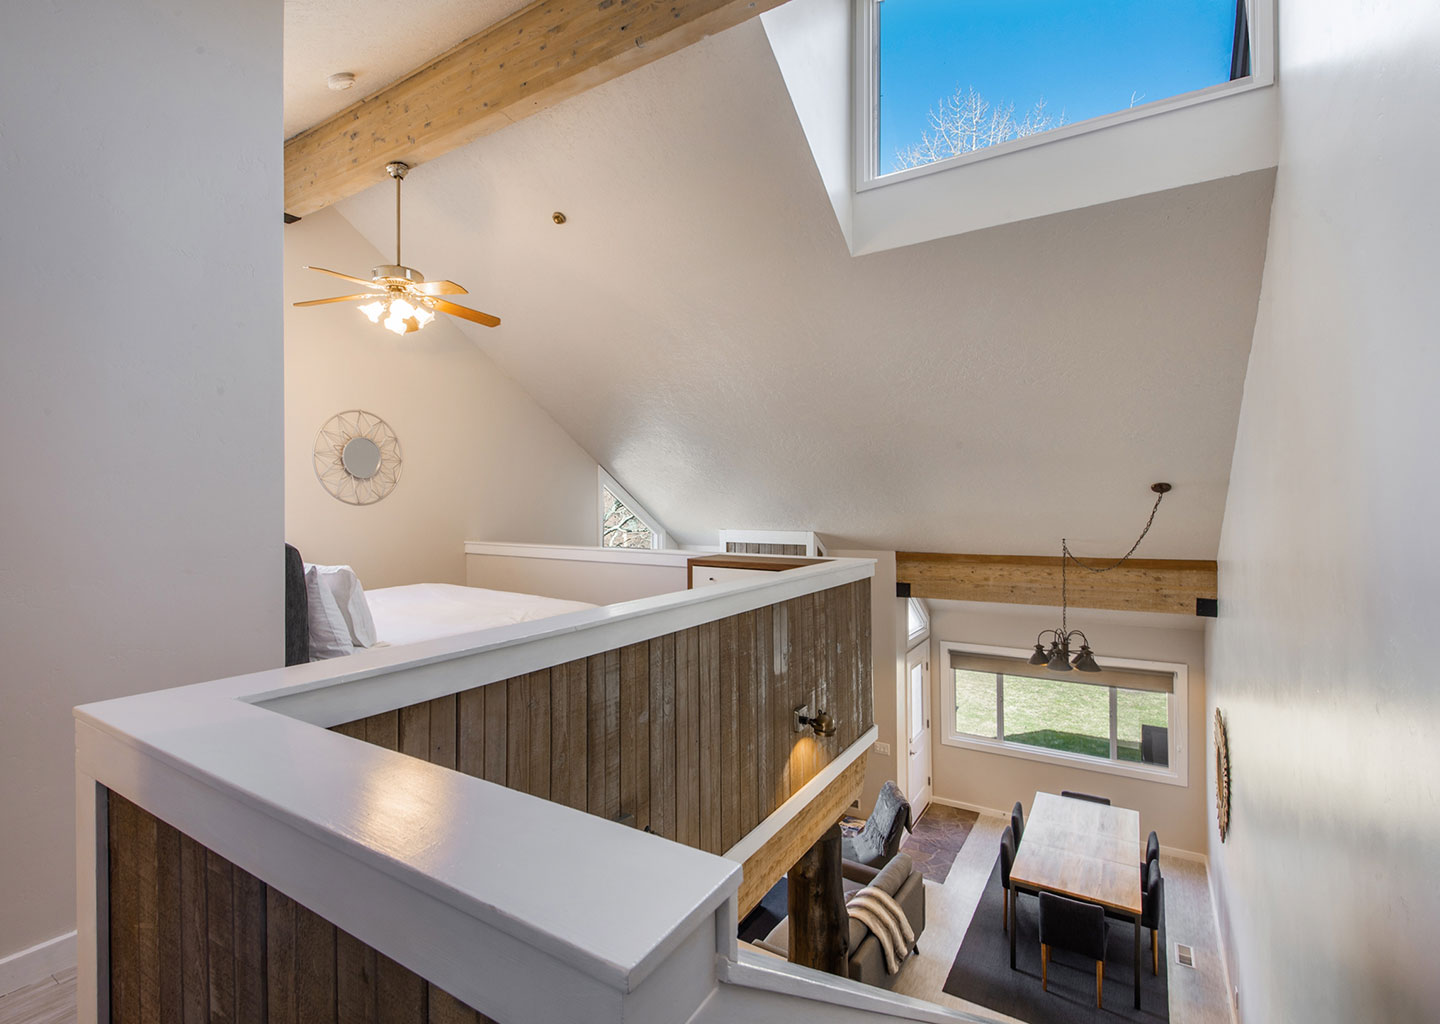 Upstairs Lofted Bedroom with Sky Light at Three Kings Condominiums in Downtown Park City, Utah